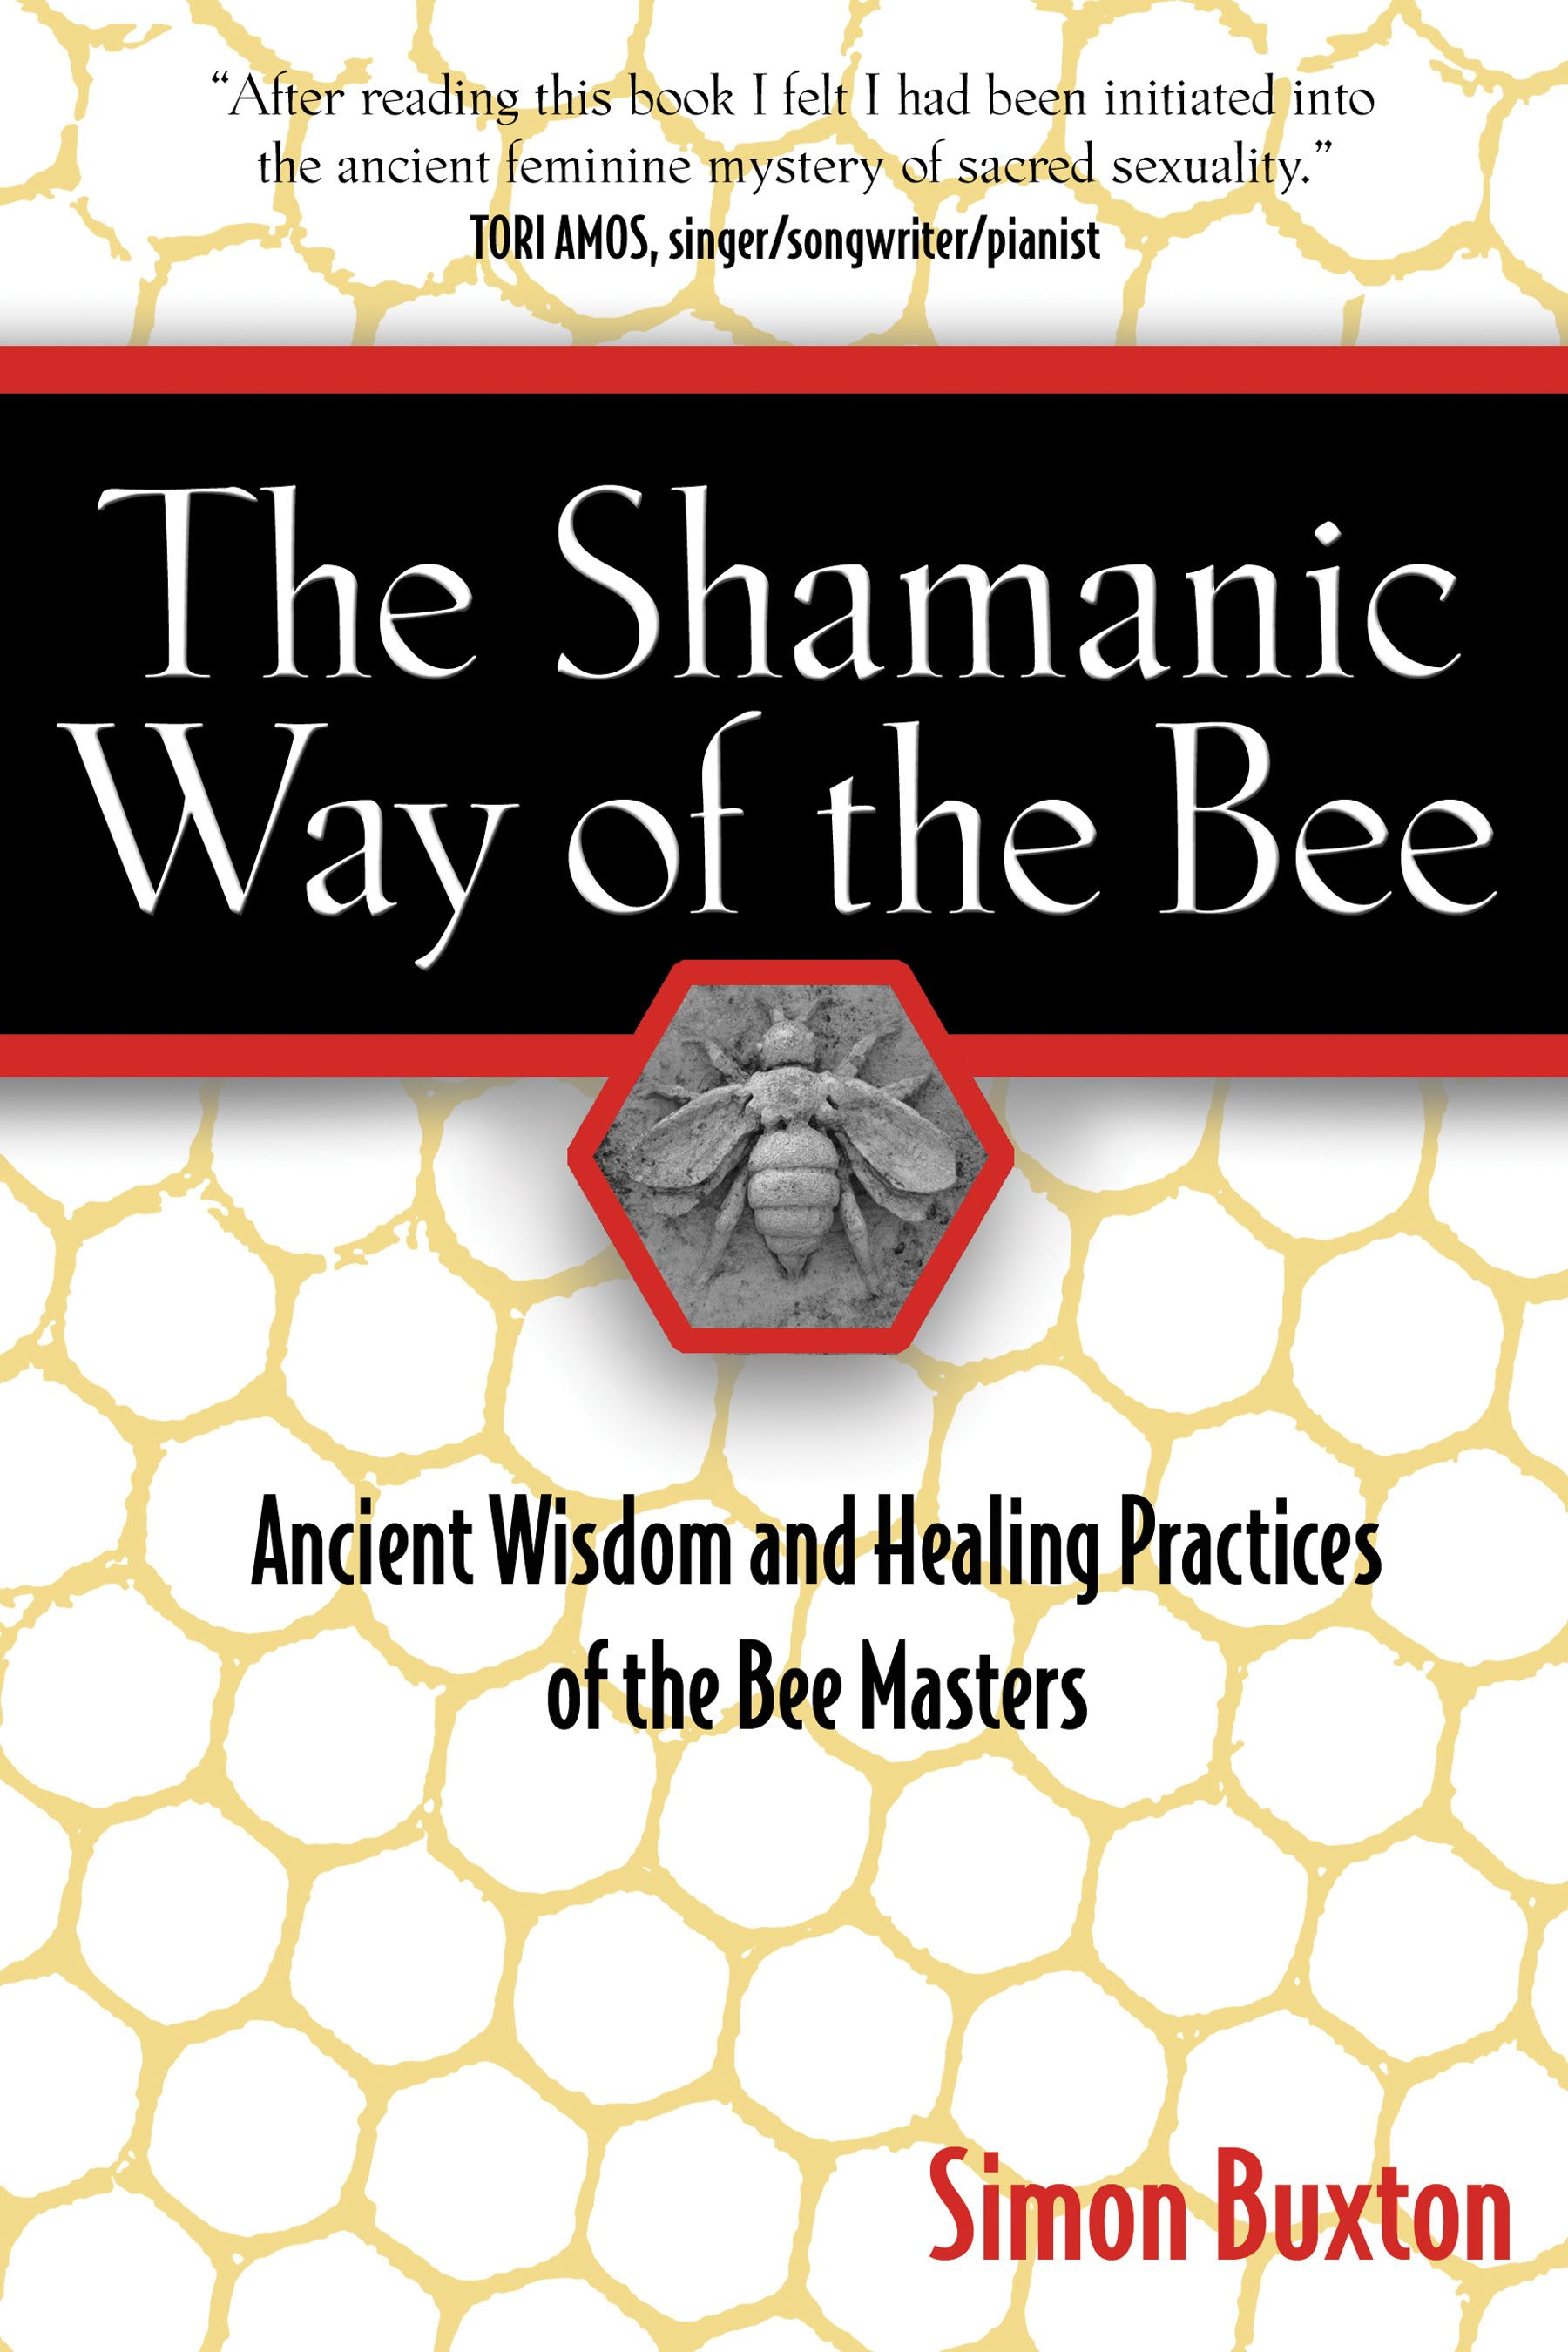 The-shamanic-way-of-the-bee-9781594771194_hr